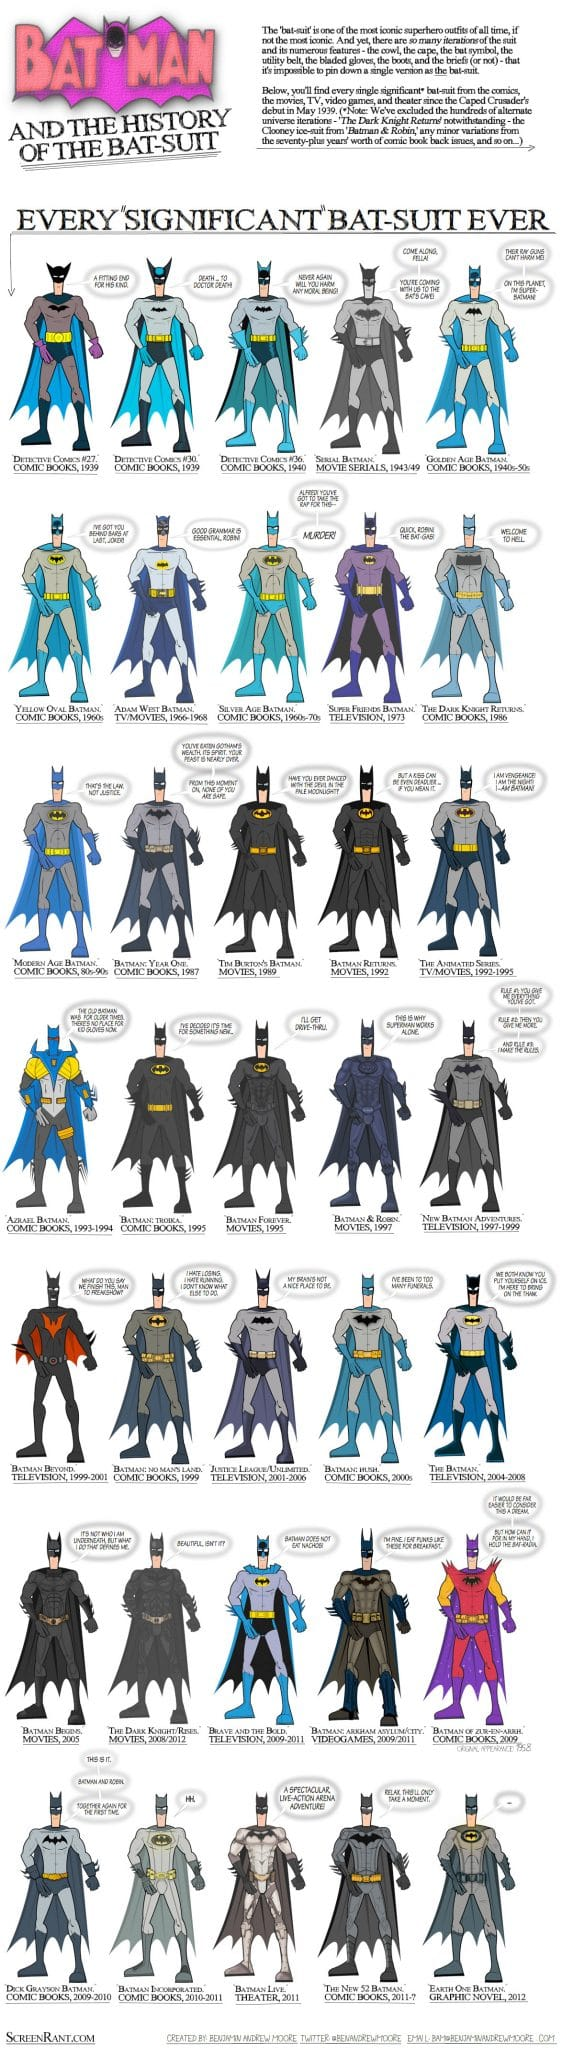 batman batsuit infographic